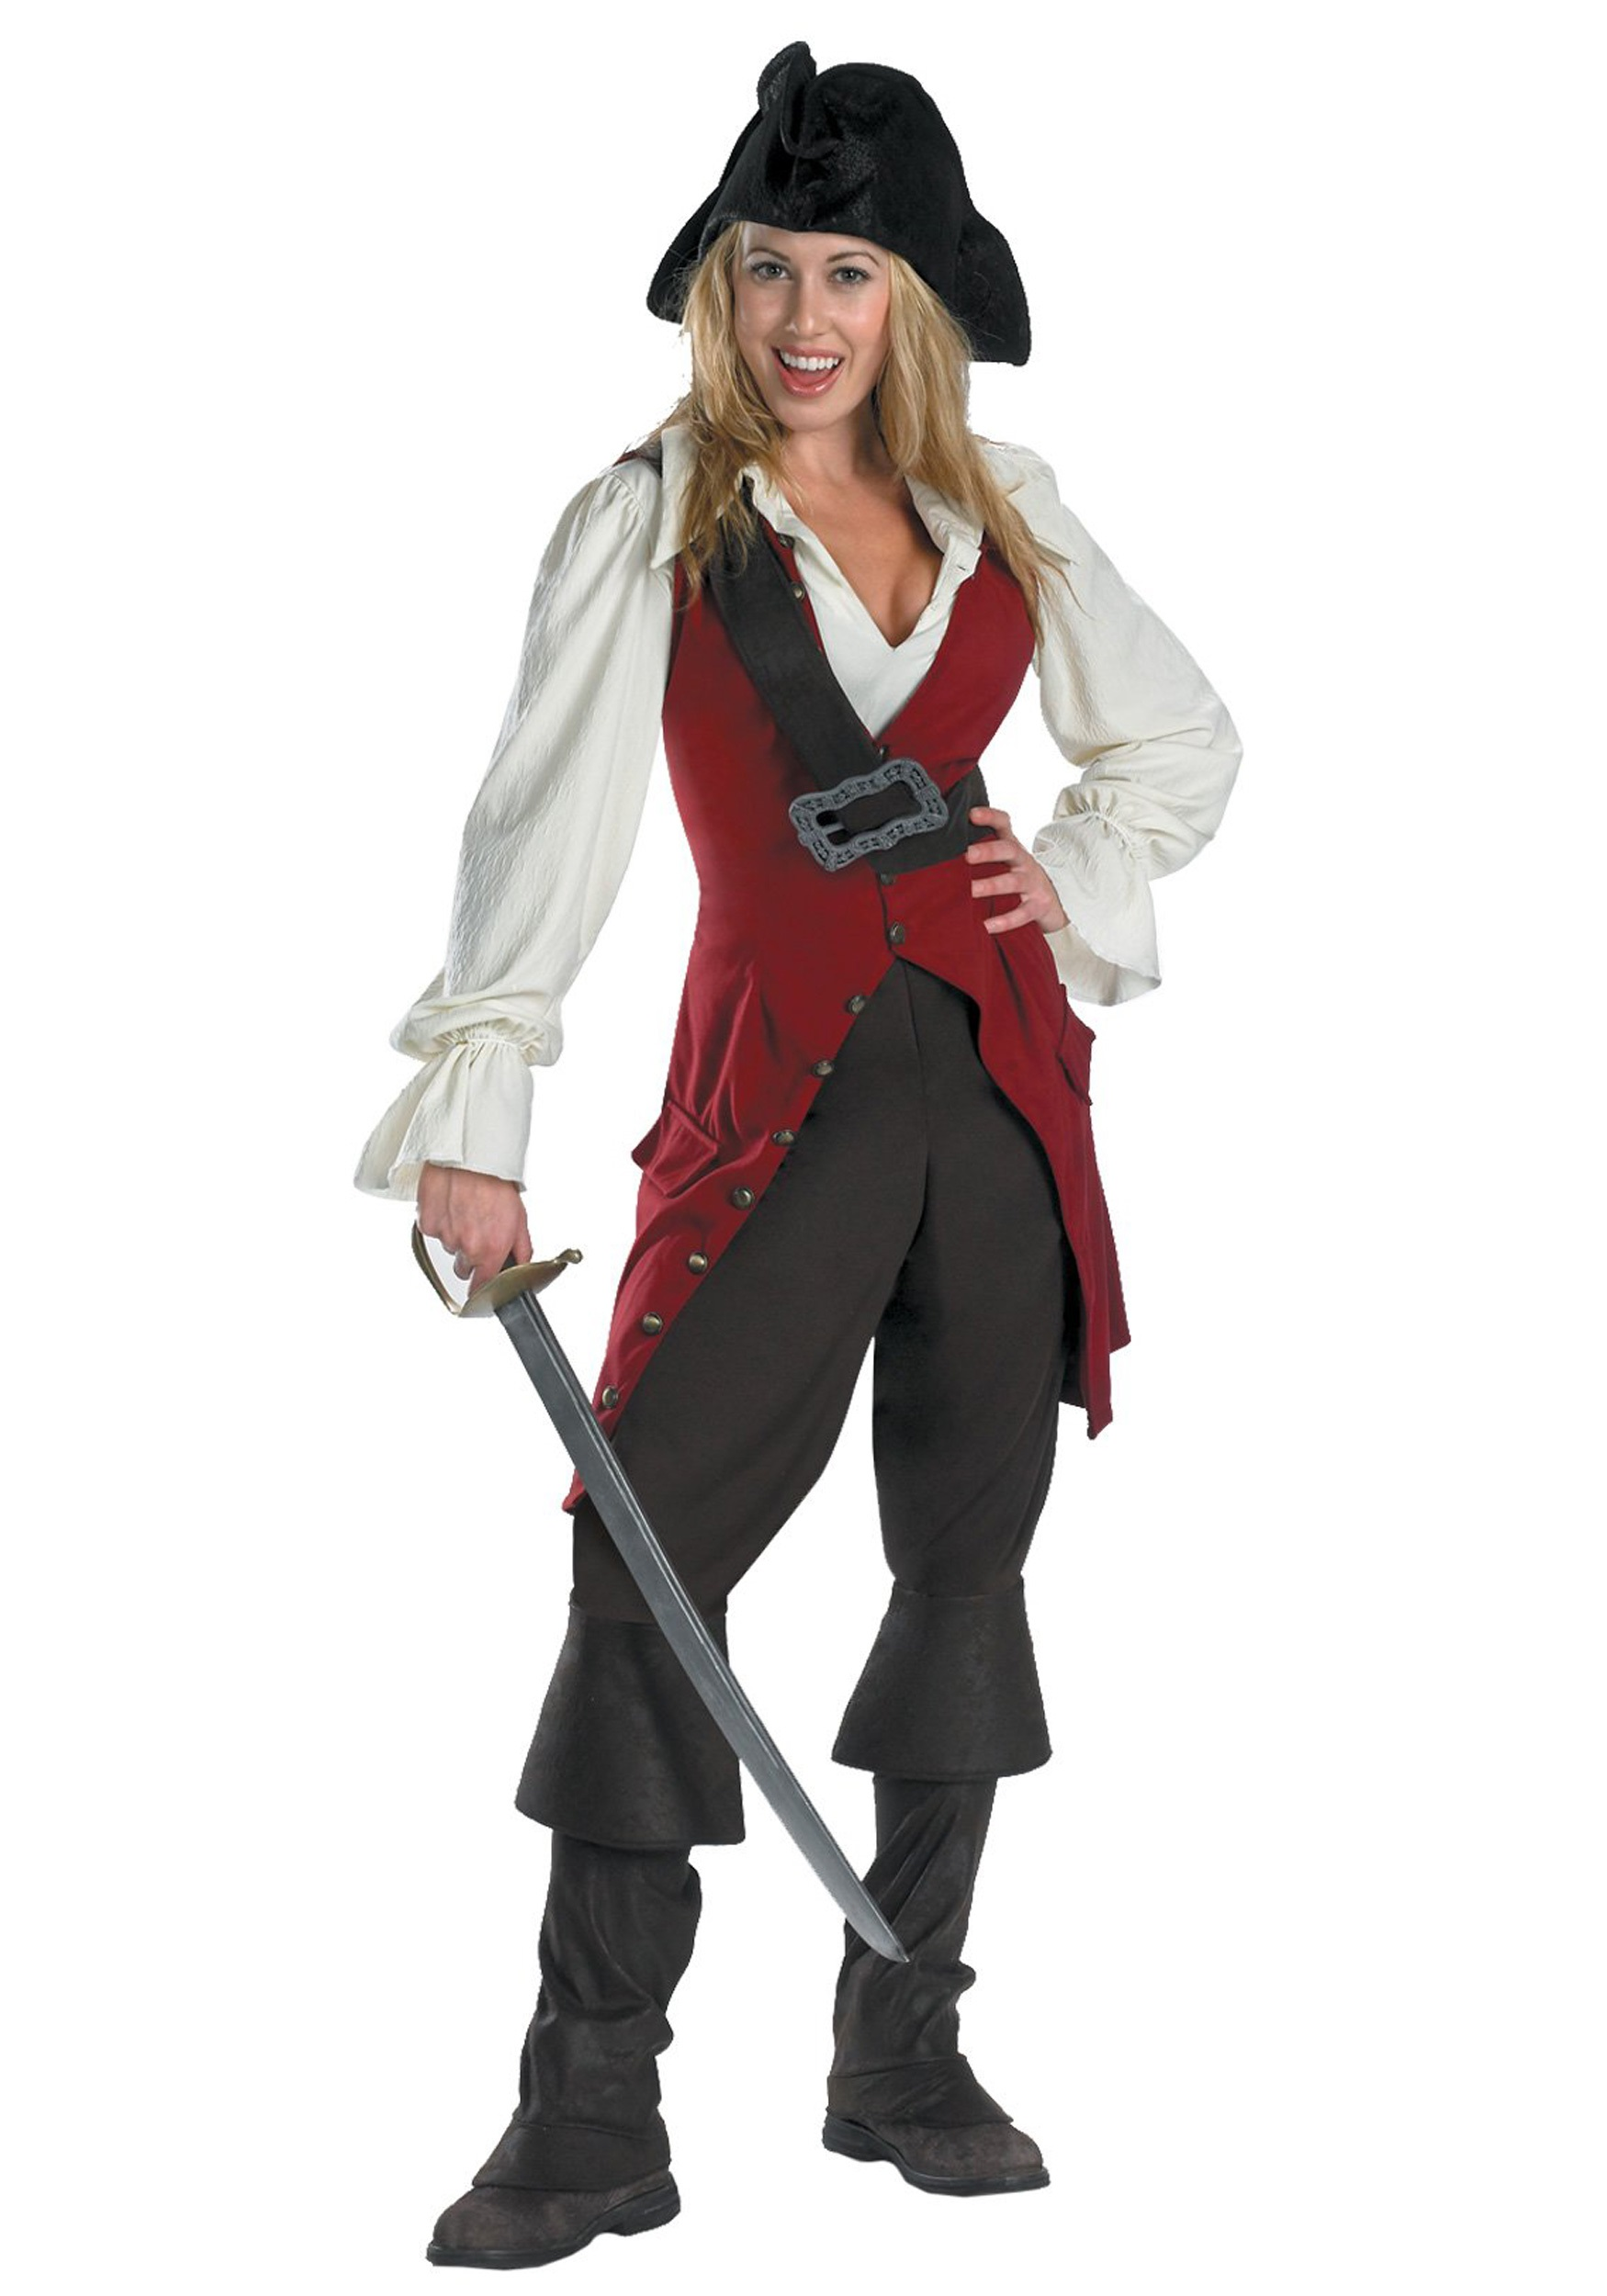 Women's Pirate Costumes - Female Pirate Costume Halloween